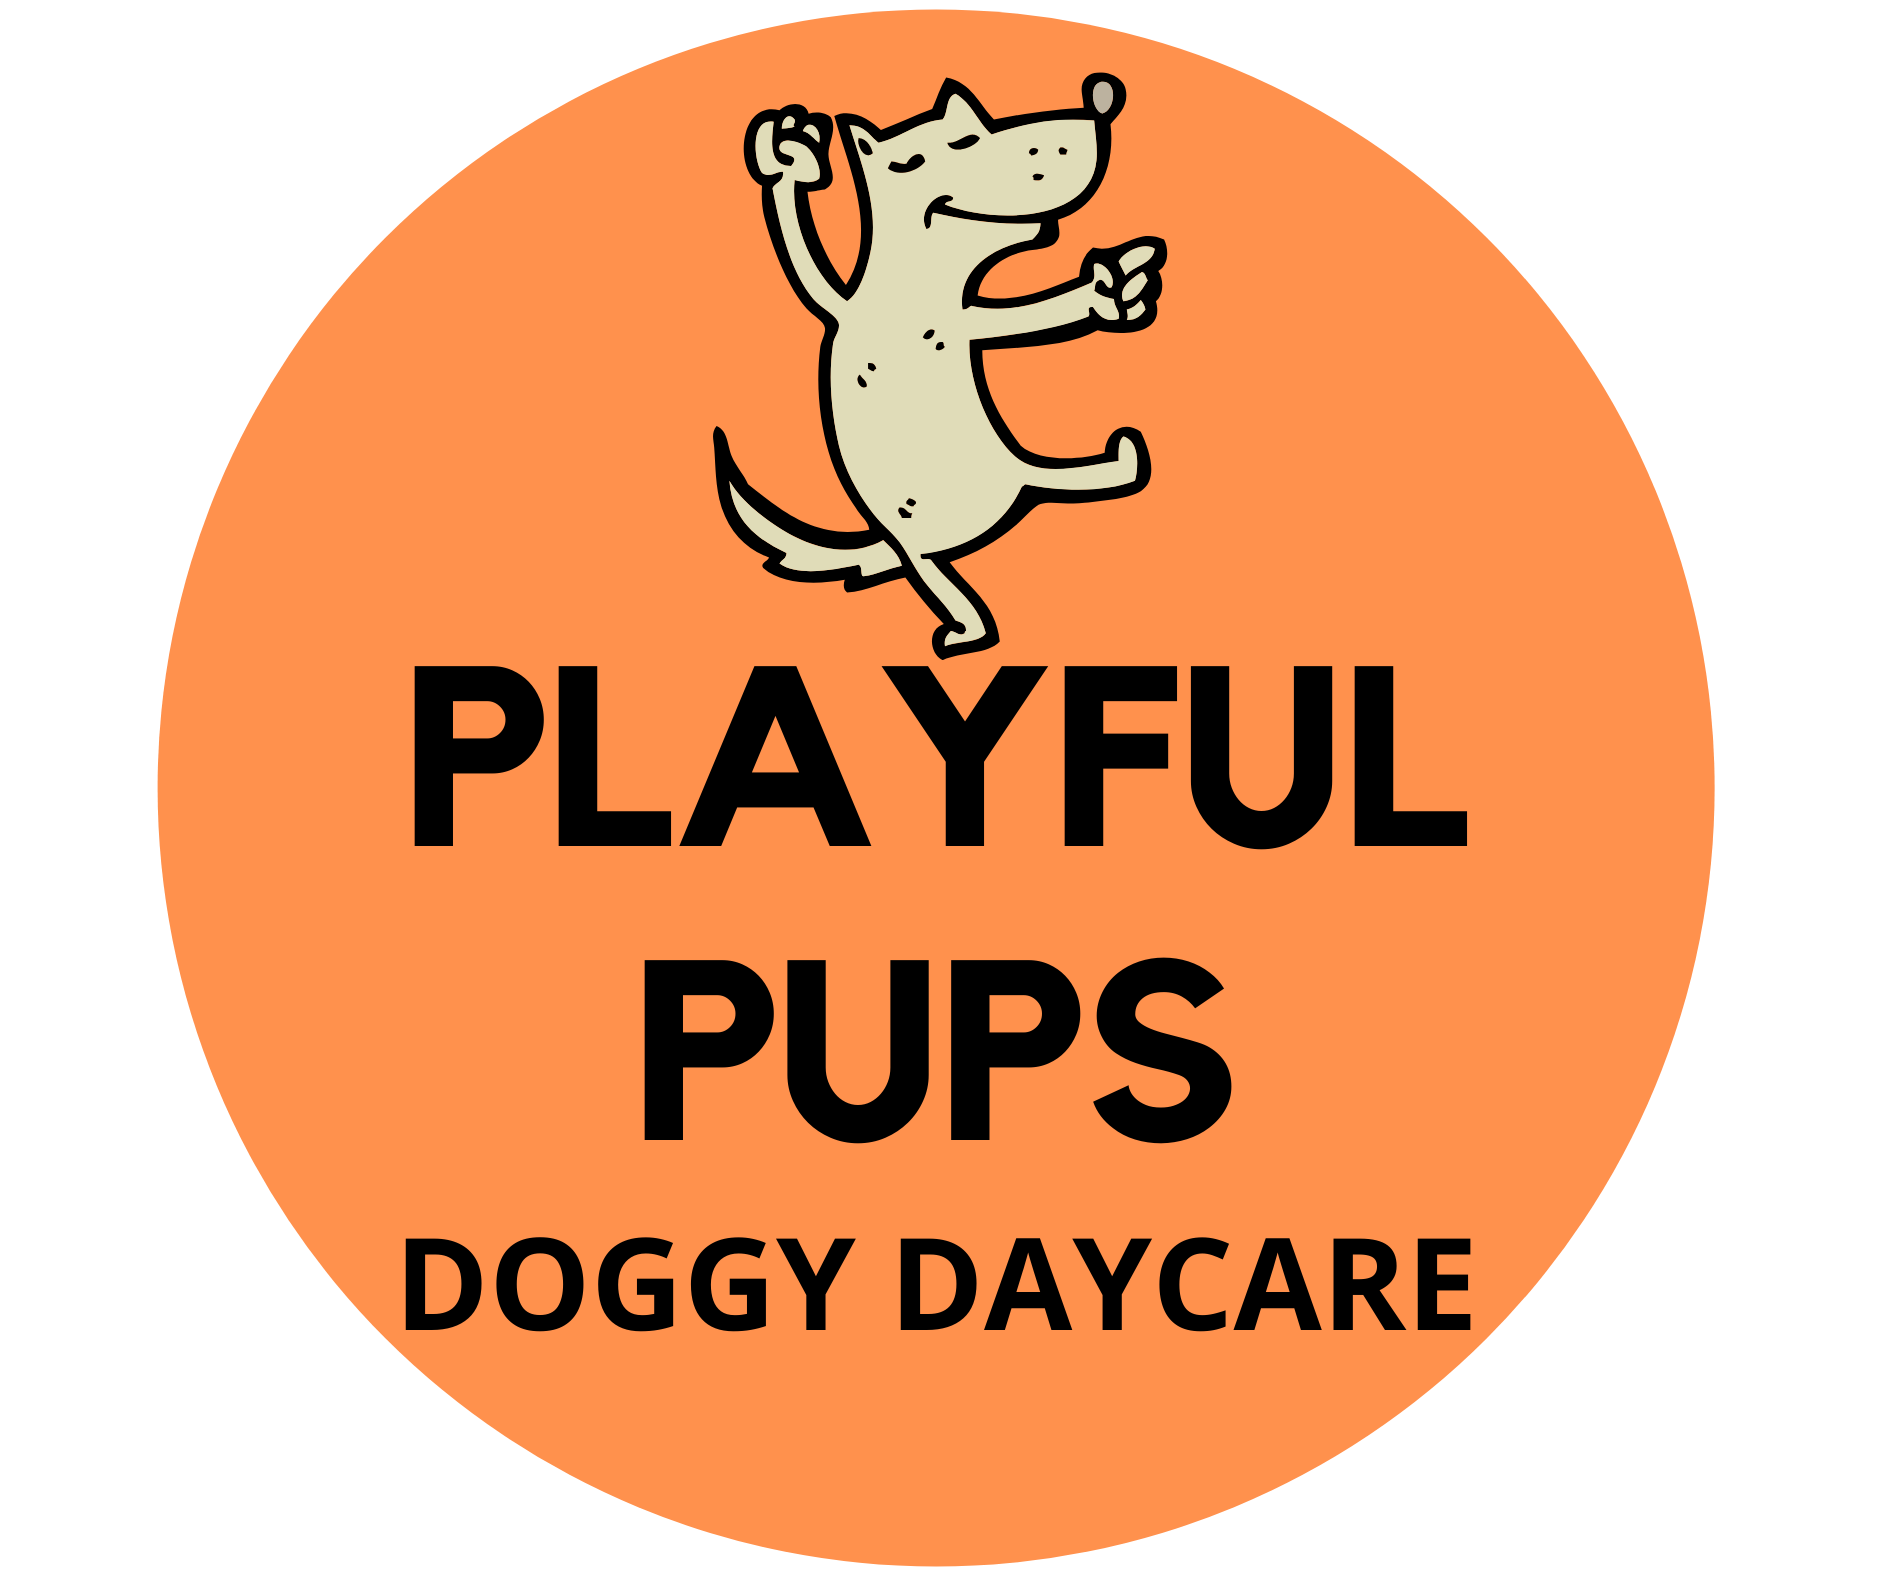 Playful Pups Doggy Daycare